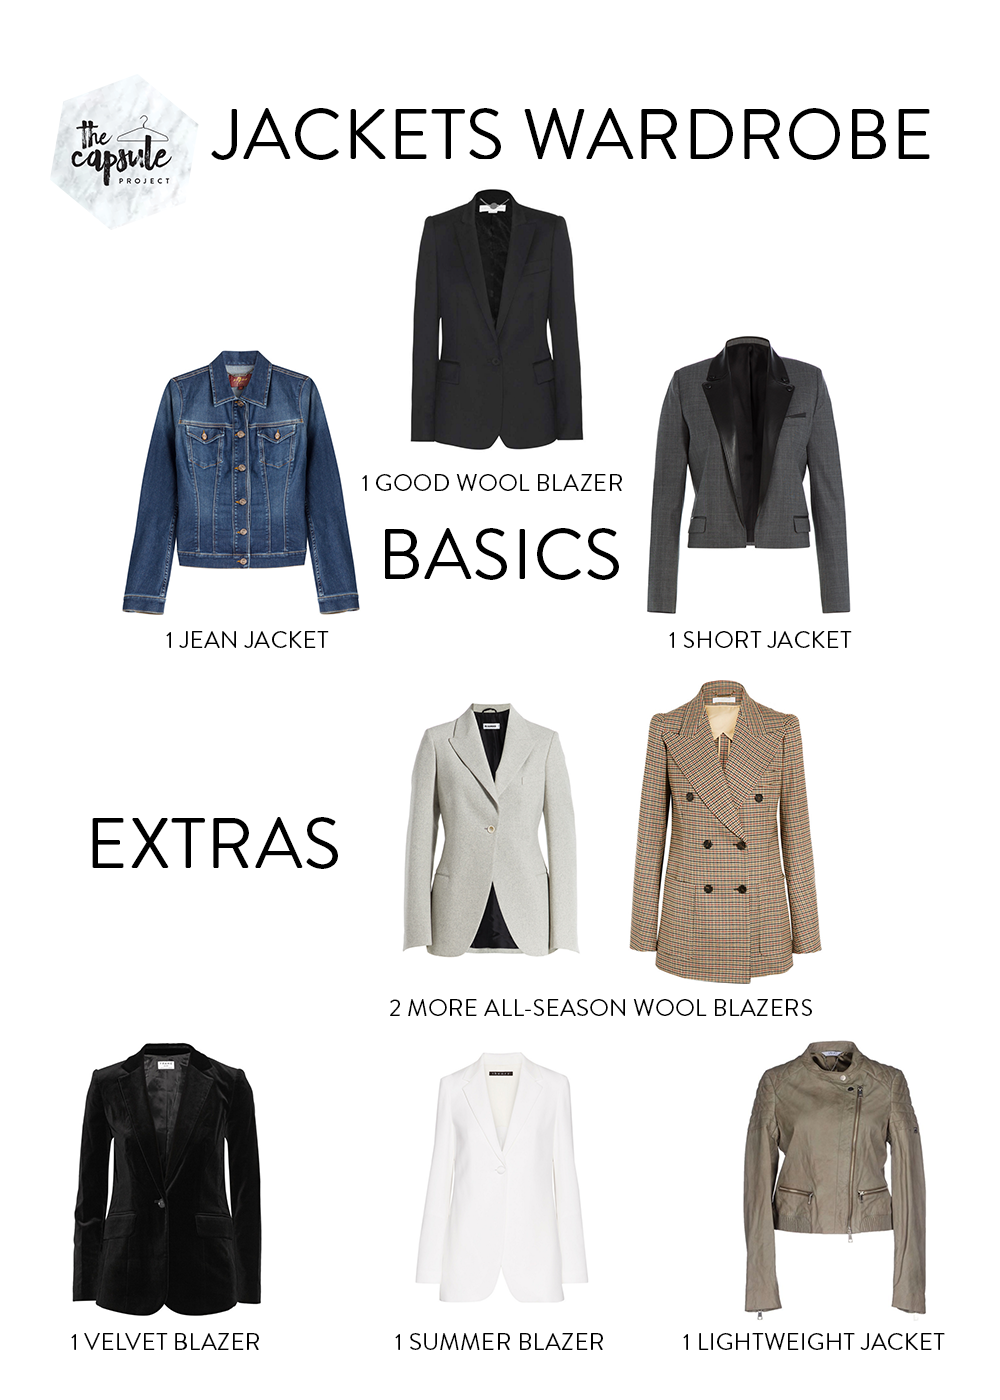 These jackets will last for years and carry you from season to season!